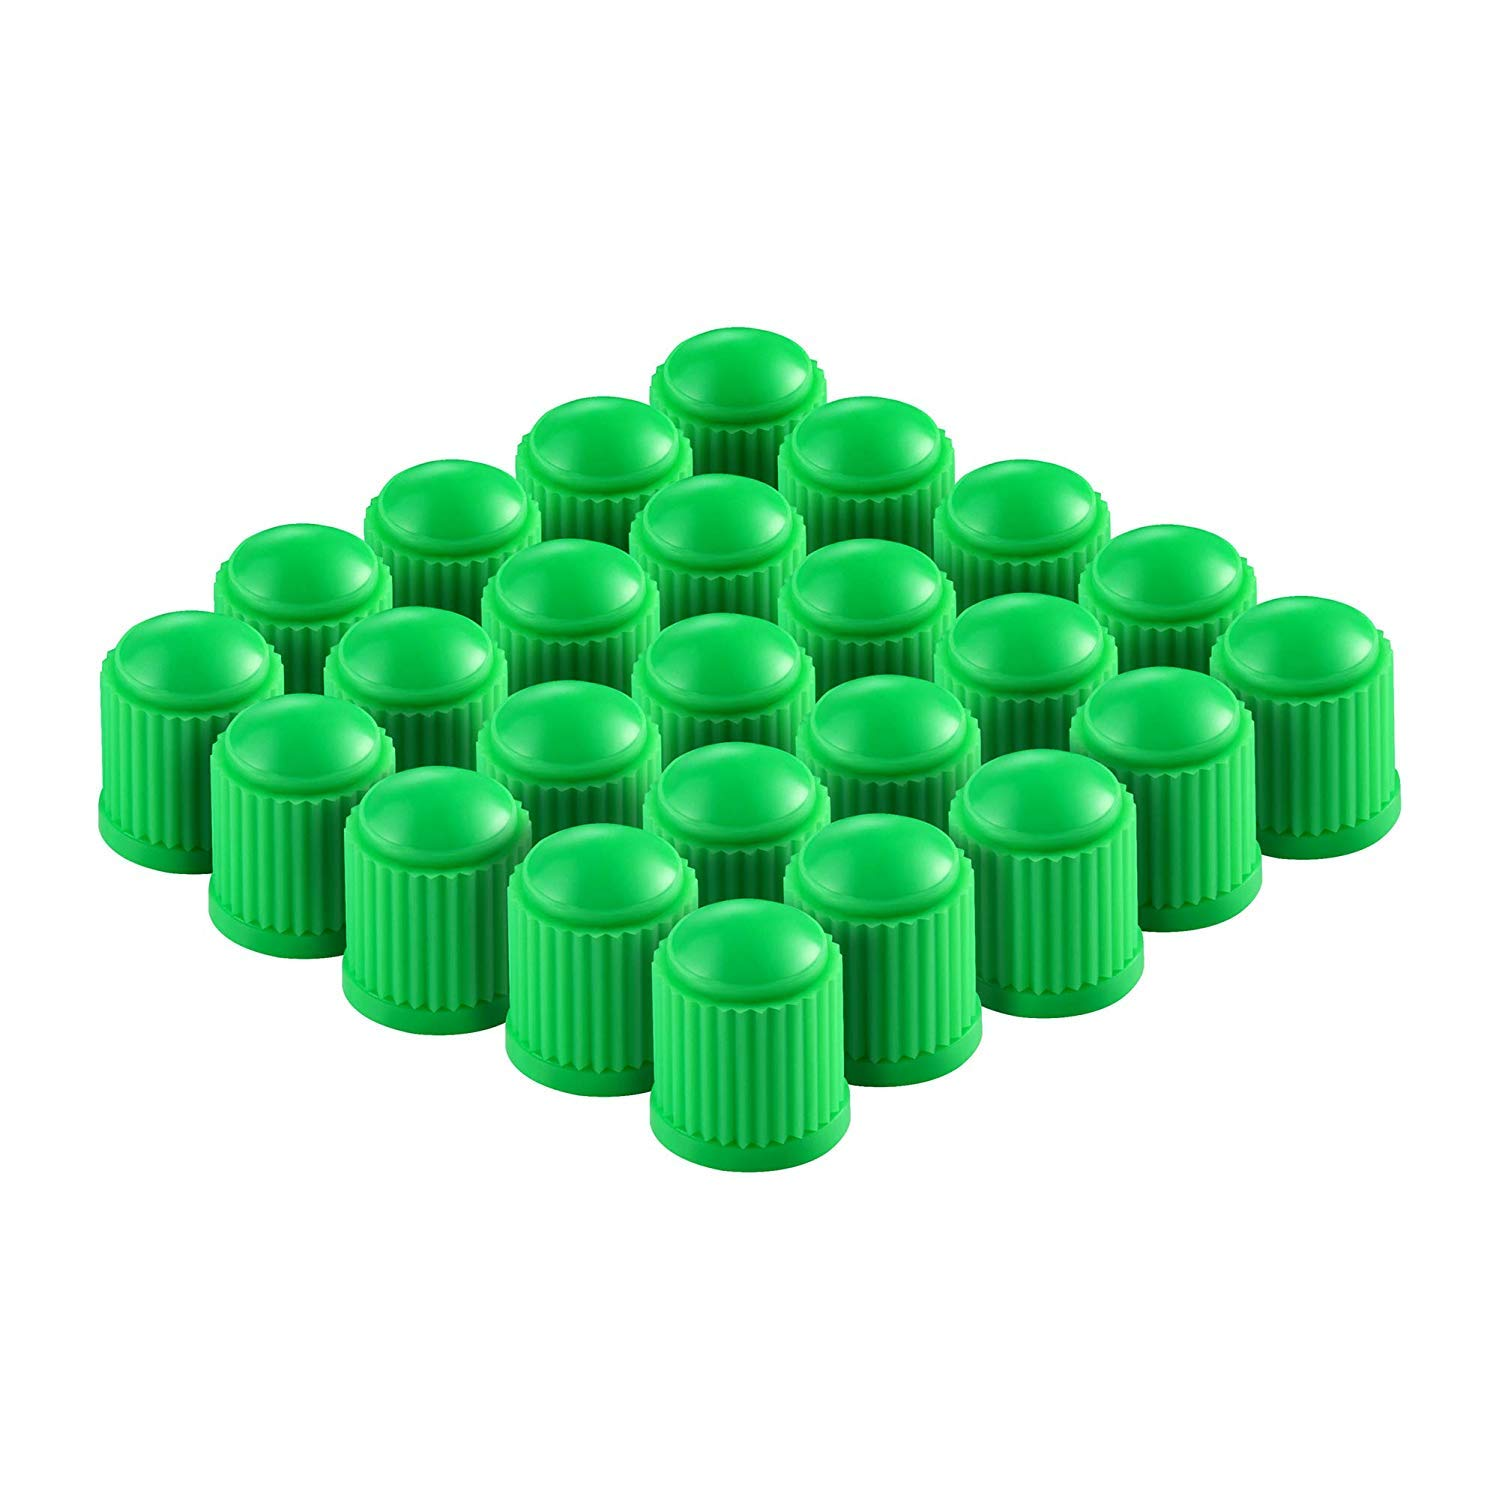 Delux Car Wheel Tire Valve Stem Dust Caps for Car, Motorbike, Bike and Bicycle | Heavy-Duty, Airtight Seal - 200 Pieces (Green) product image